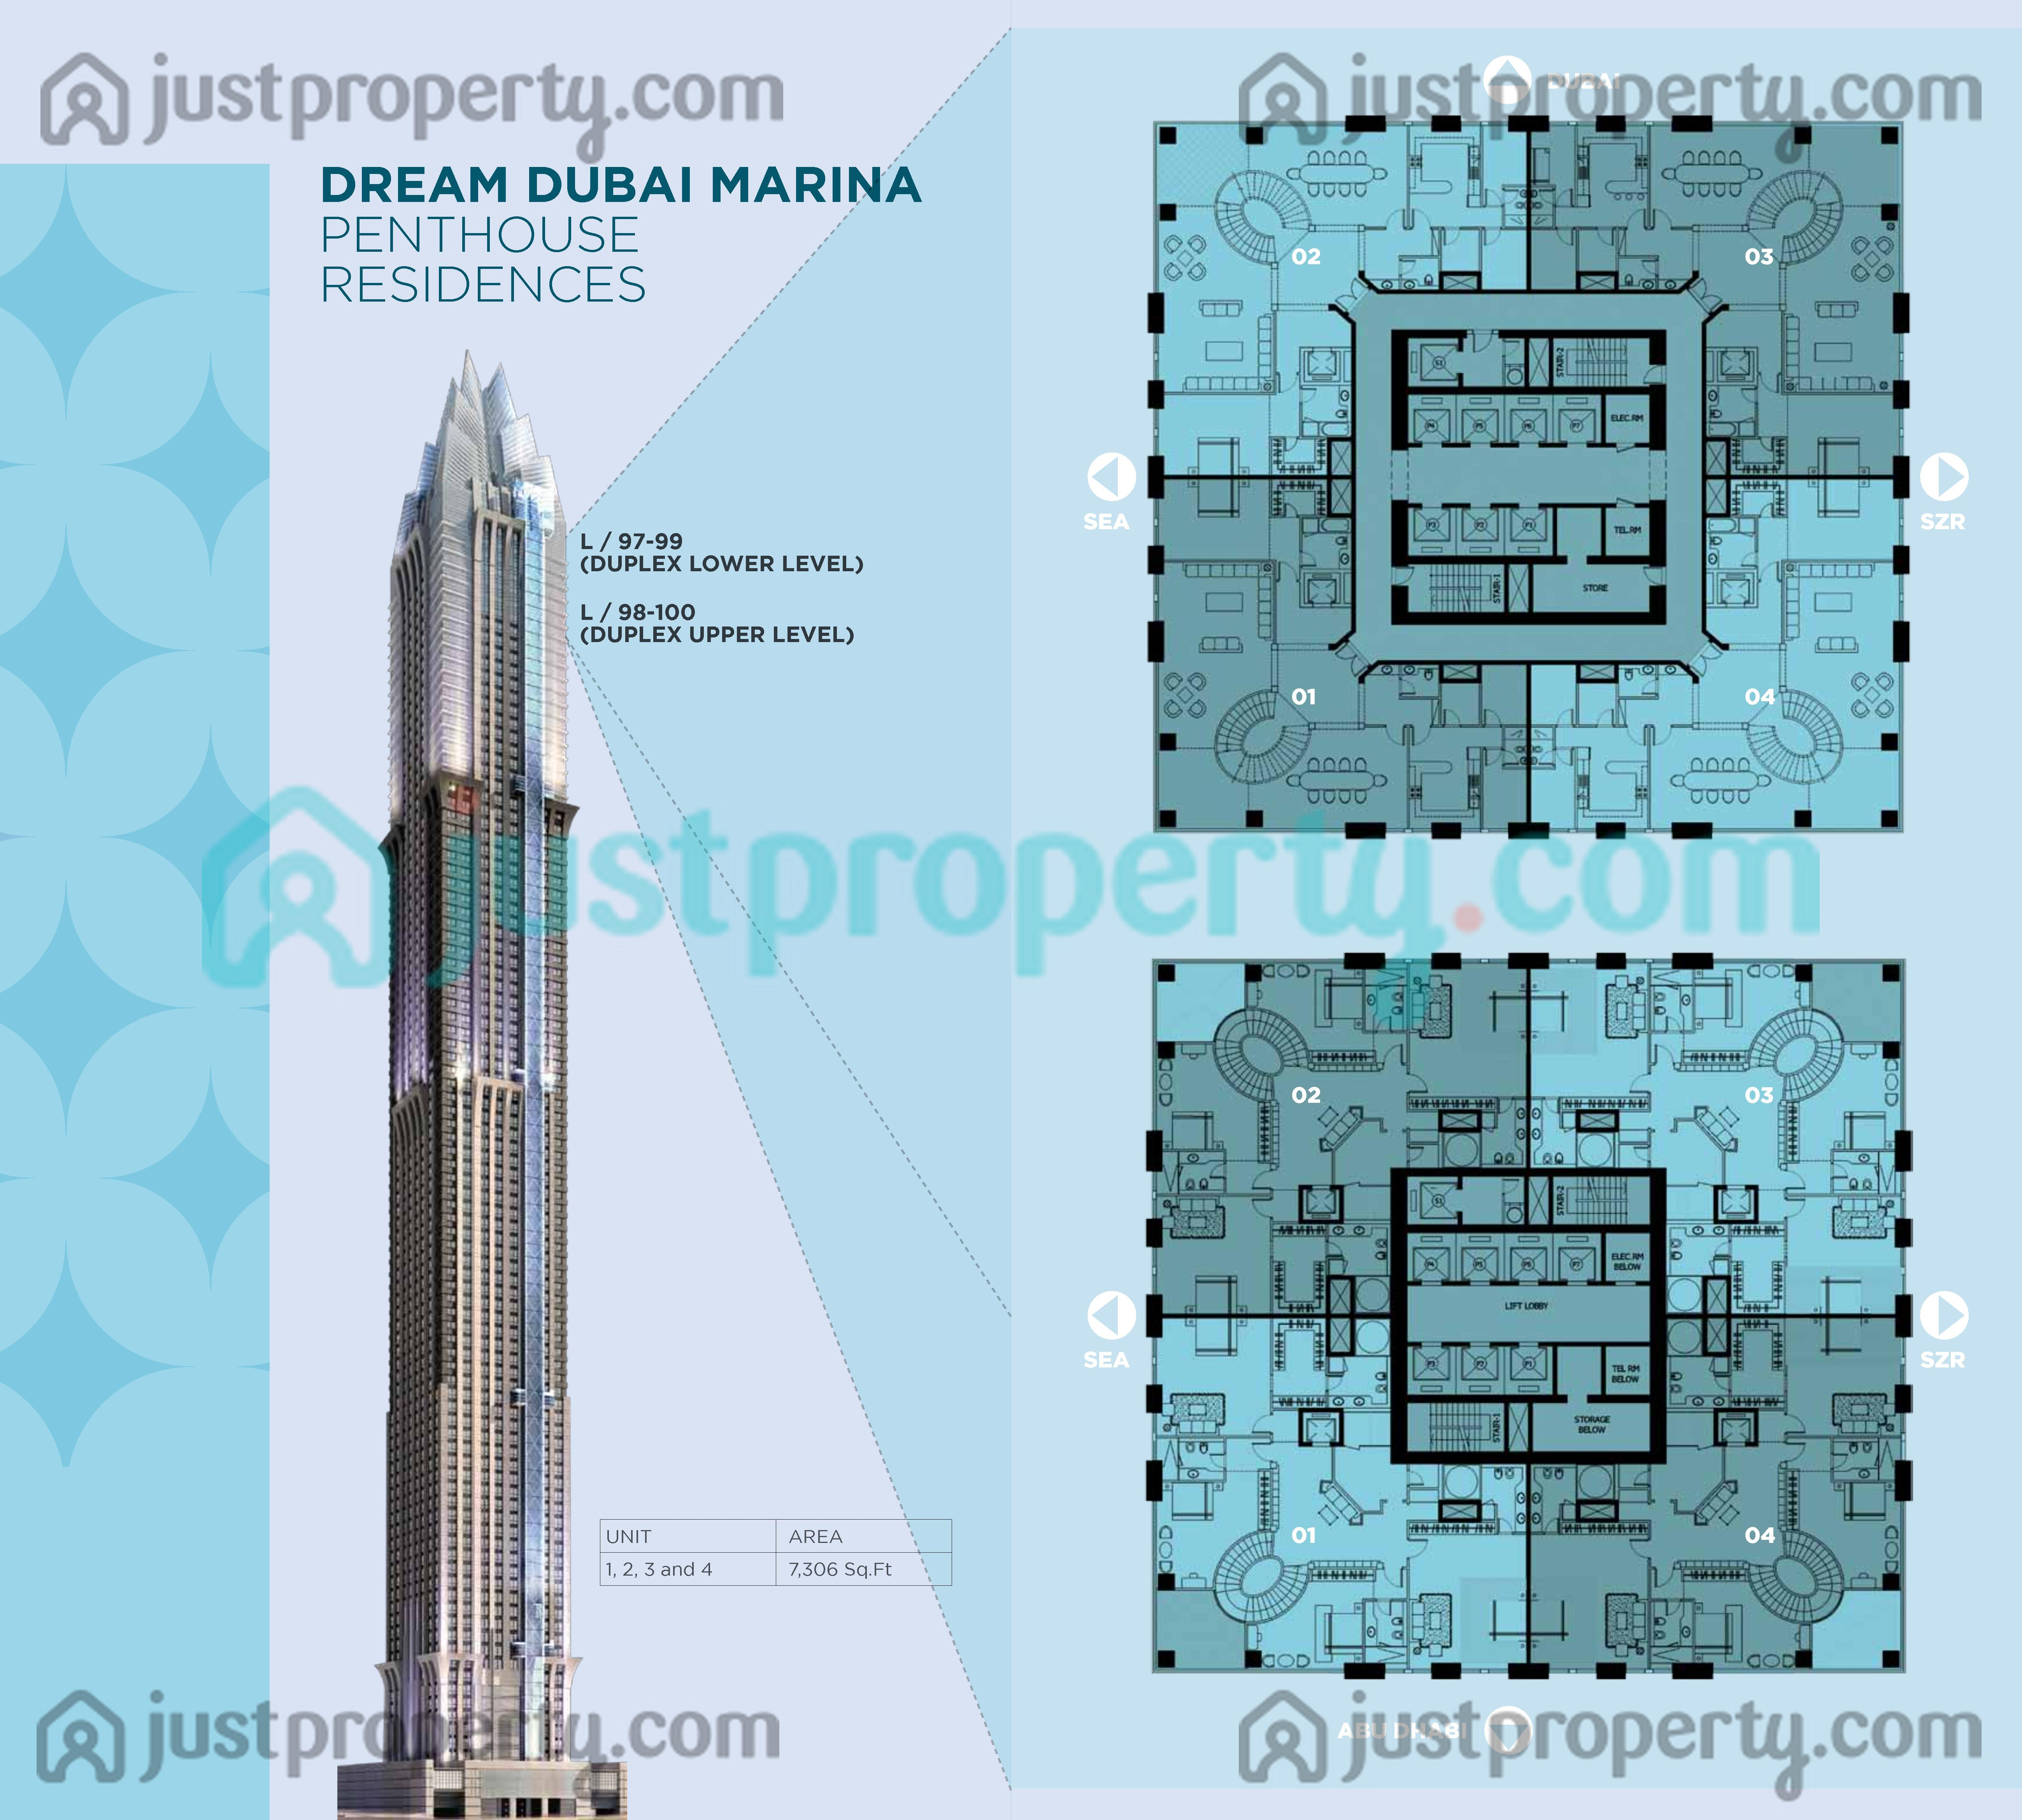 Marina 101 Dream Tower Floor Plans Justproperty Com